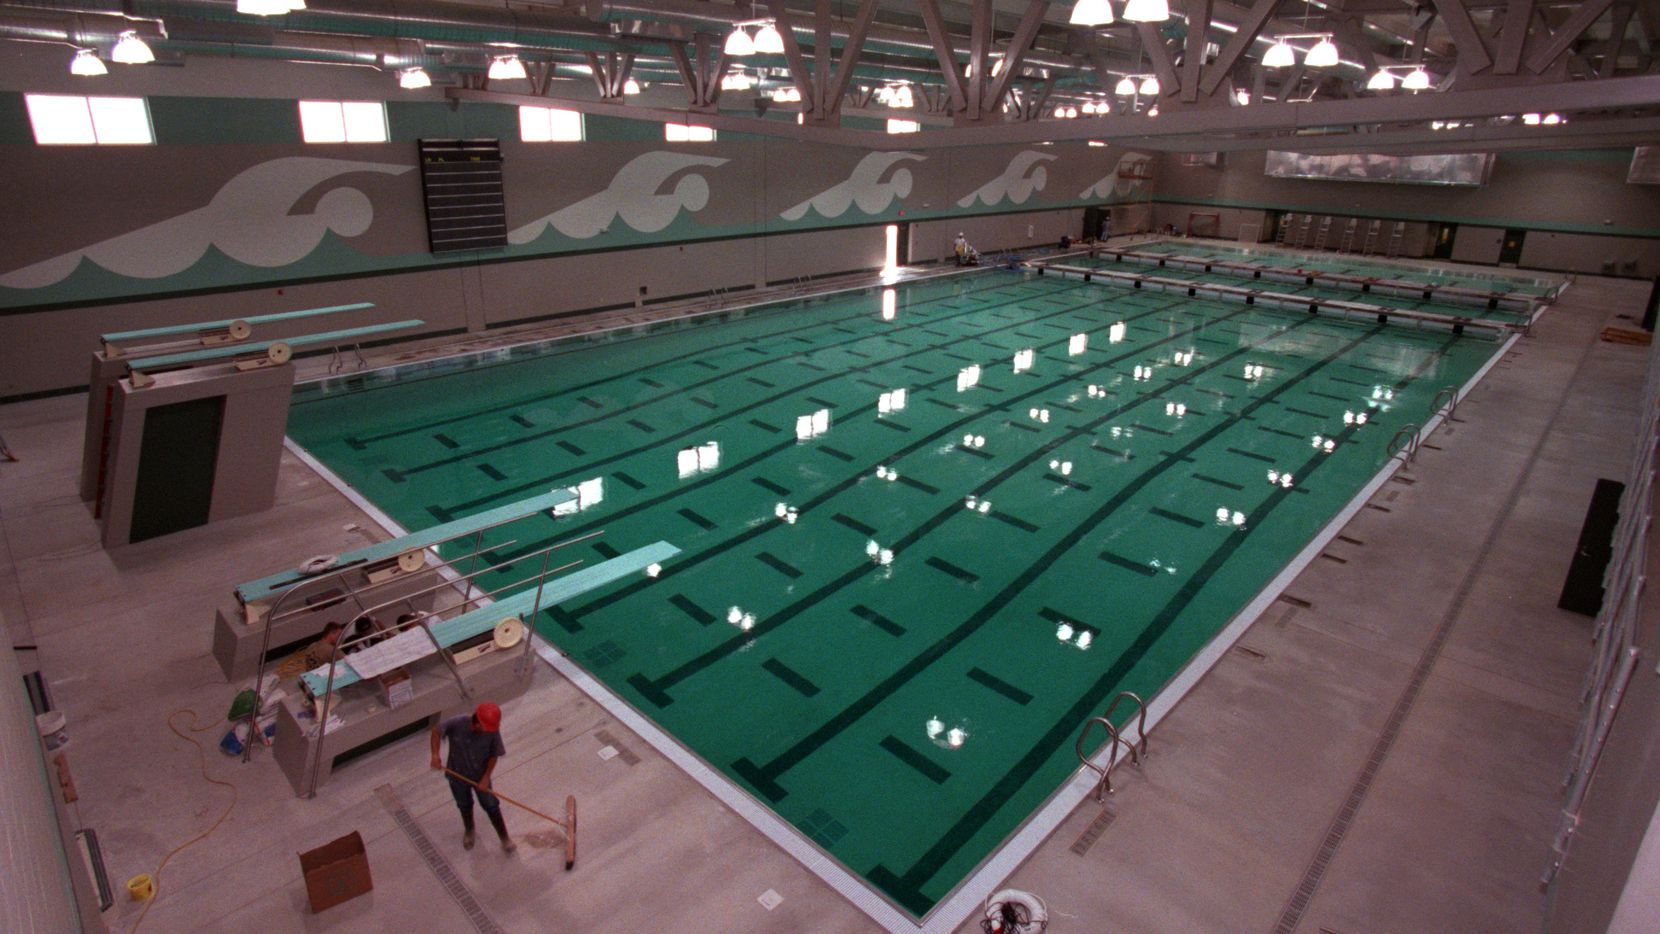 ORG XMIT: S0371420216_STAFF The C.I.S.D. Aquatics Center in Southlake will be opened on Nov. 10, 2001.  The indoor pool is 50 m x 25 yds. with two warm up lanes, a 6 ft. bulkhead and a 4 ft. bulkhead.